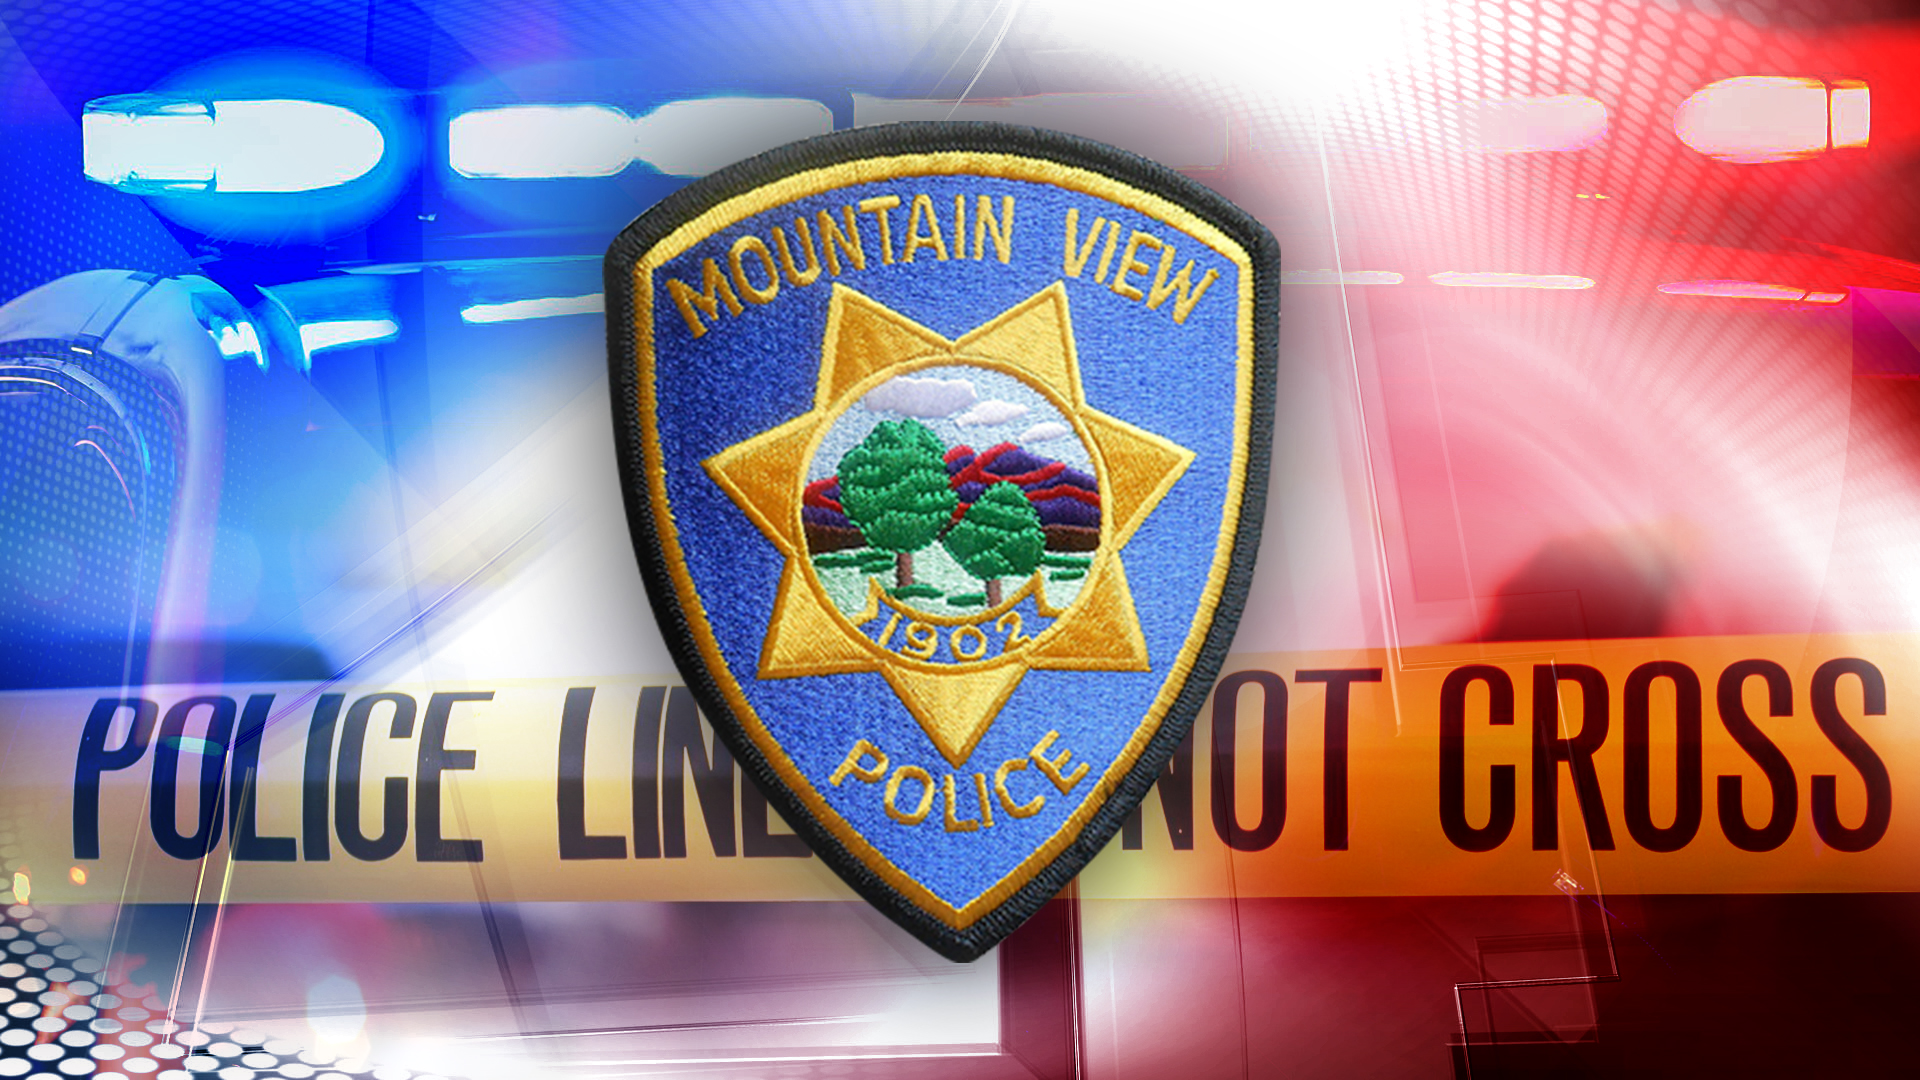 graphic FS Police Mountain View police_1523150830185.jpg.jpg